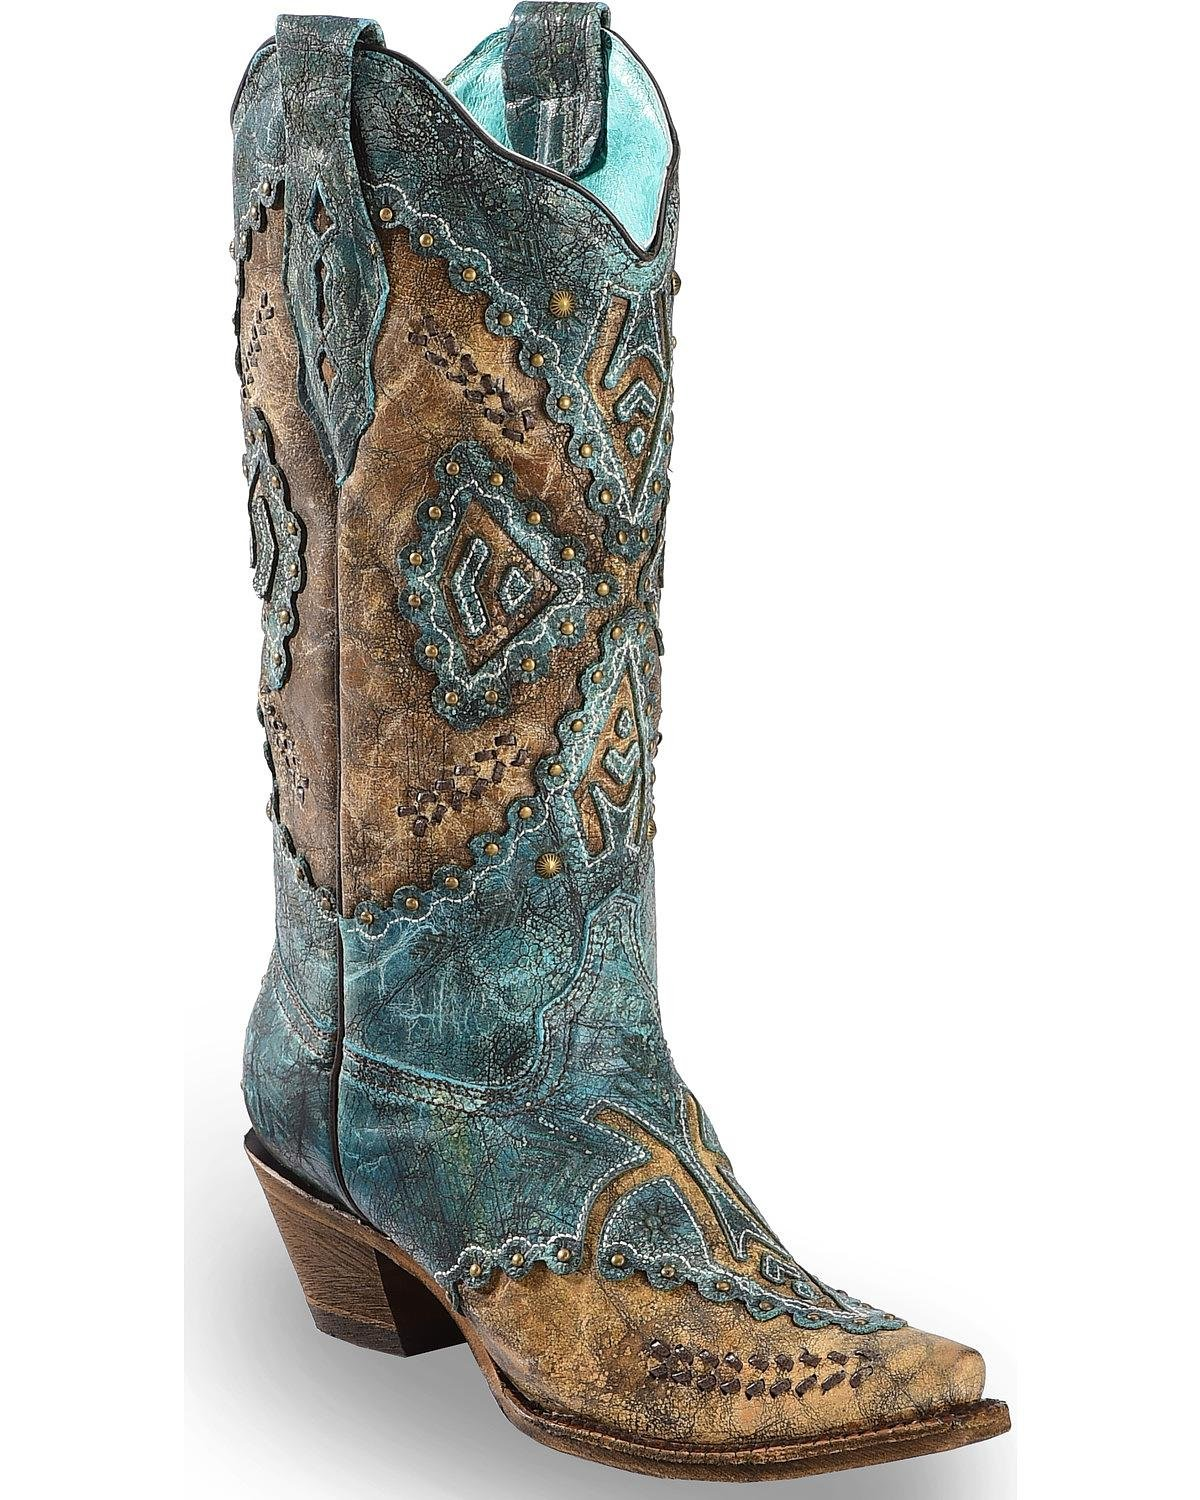 CORRAL Women's Turquoise Cowhide Inlay Cowgirl Boot Snip Toe Turquoise 6 M